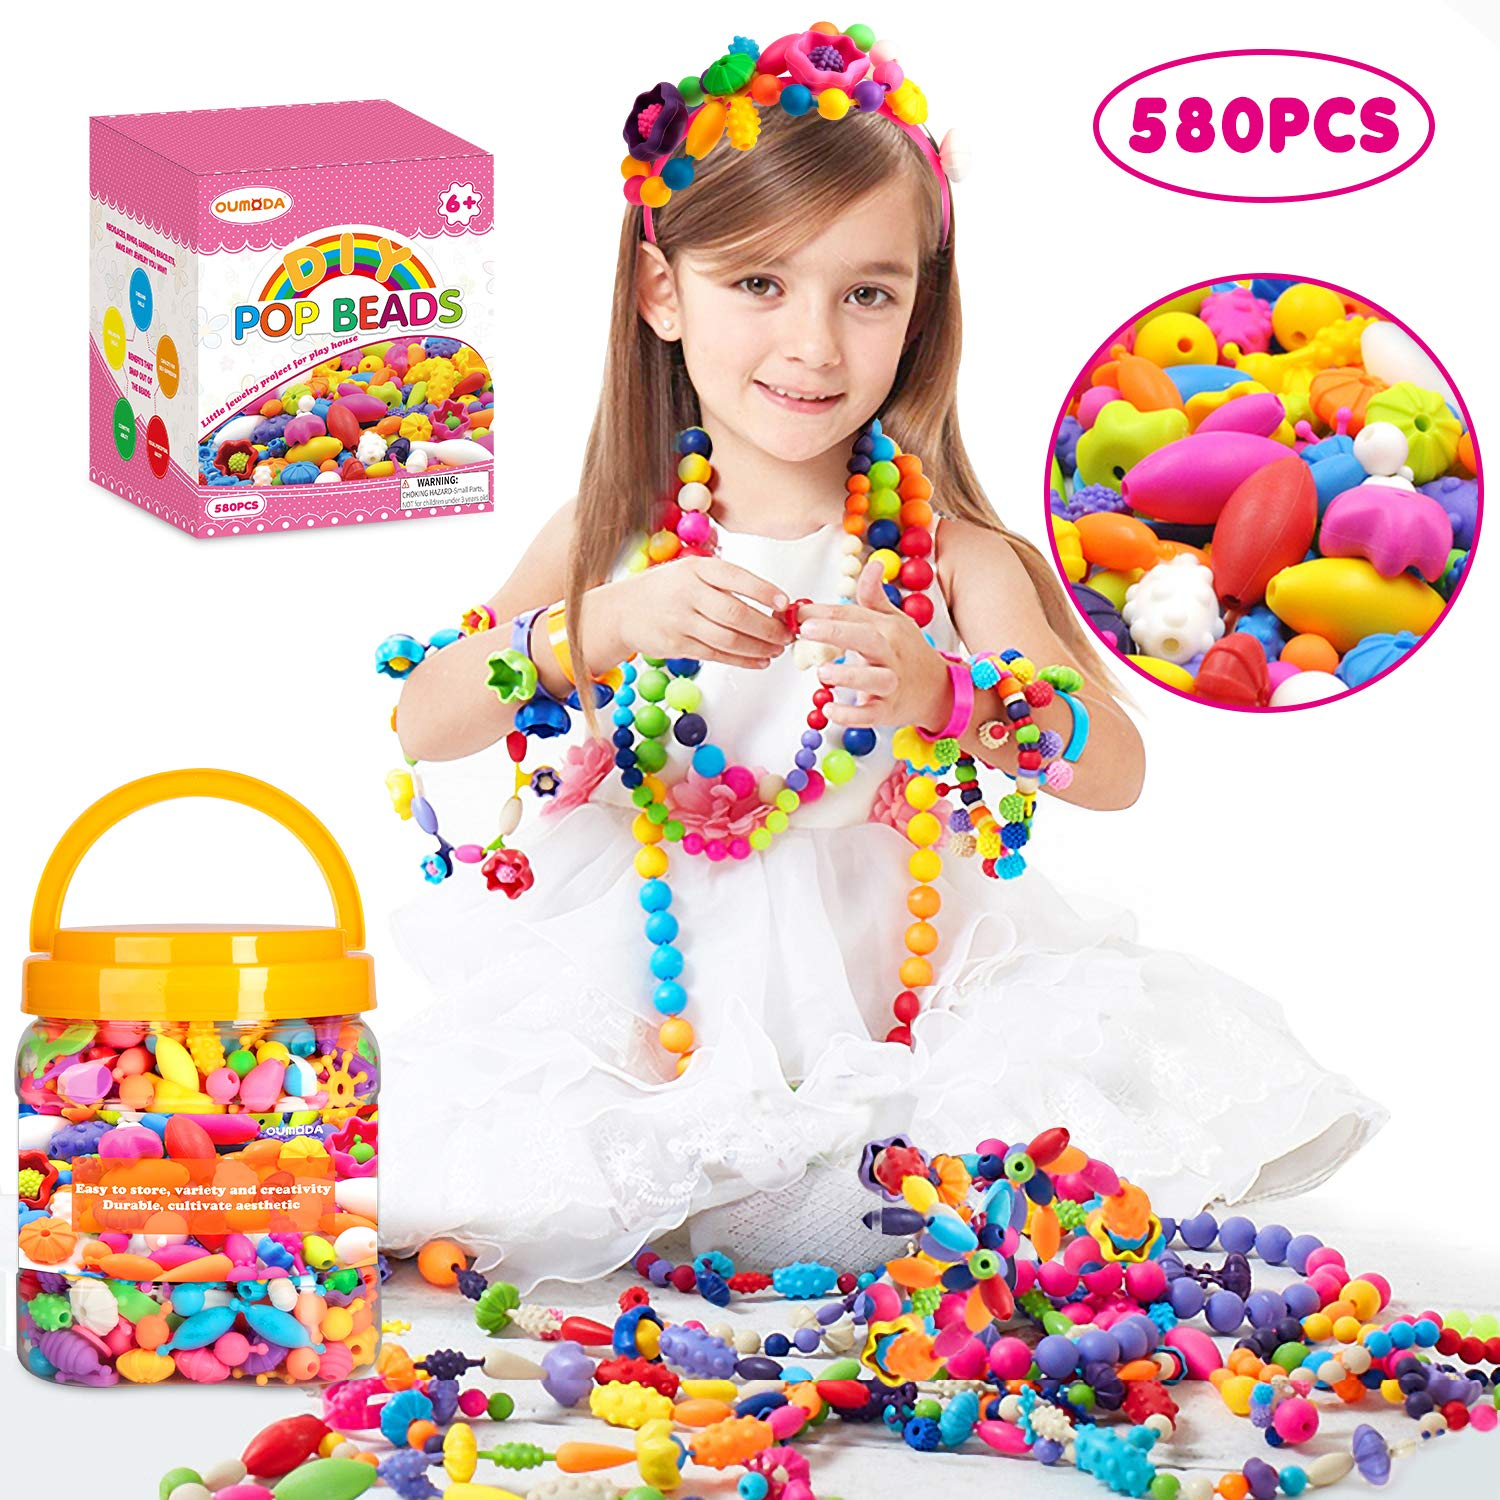 Oumoda Pop Beads Girls Toys 580 PCS DIY Jewelry Making Kit Kids Snap Beads Jewelry DIY Set Making Necklace Bracelet Ring Hairband and Earrings Art Craft Kits for 4 5 6 7 8 9 Years Old Girls